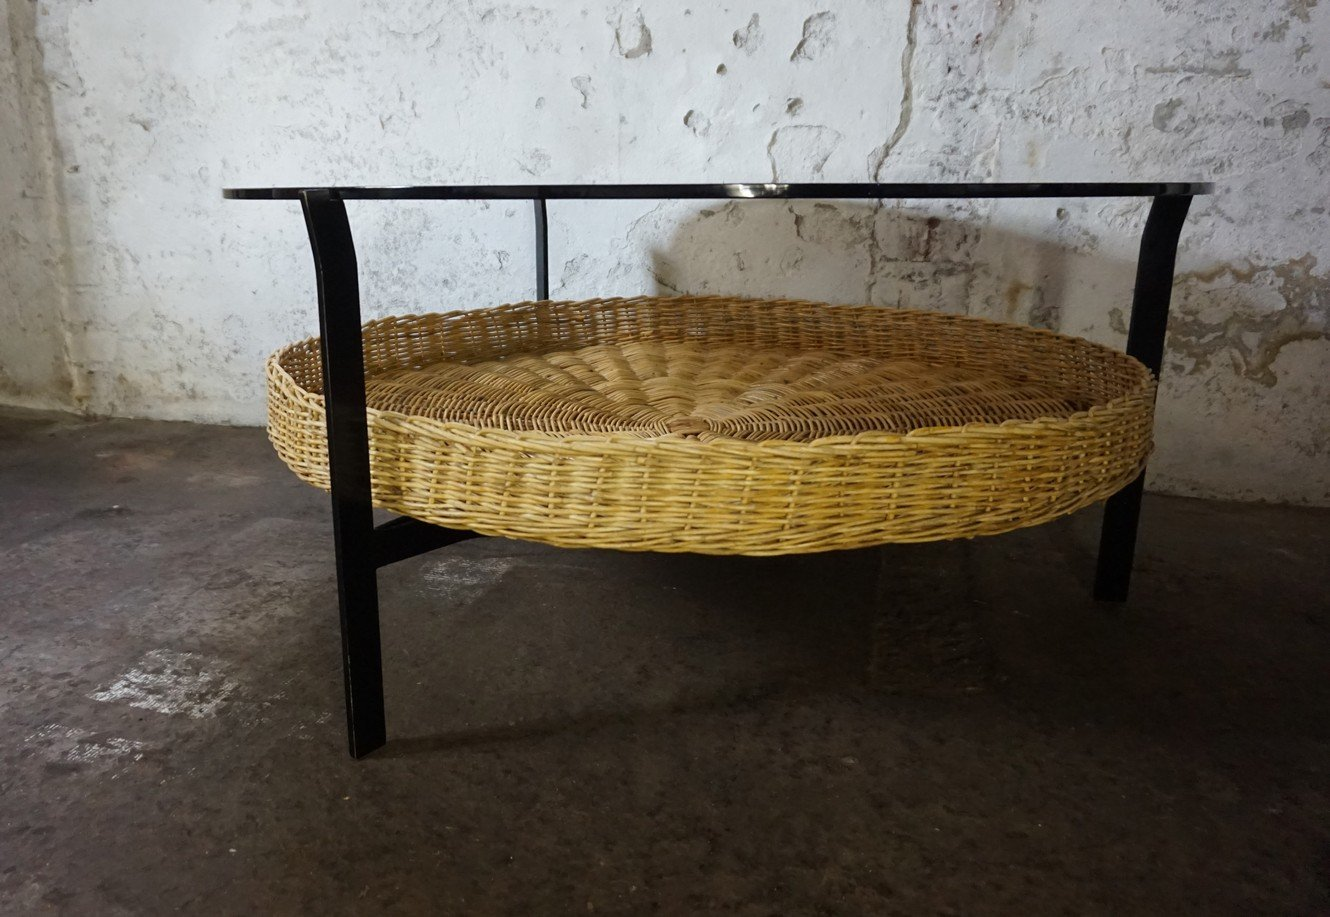 Smoked glass coffee table with wicker magazine basket 1960s for smoked glass coffee table with wicker magazine basket 1960s for sale at pamono geotapseo Gallery